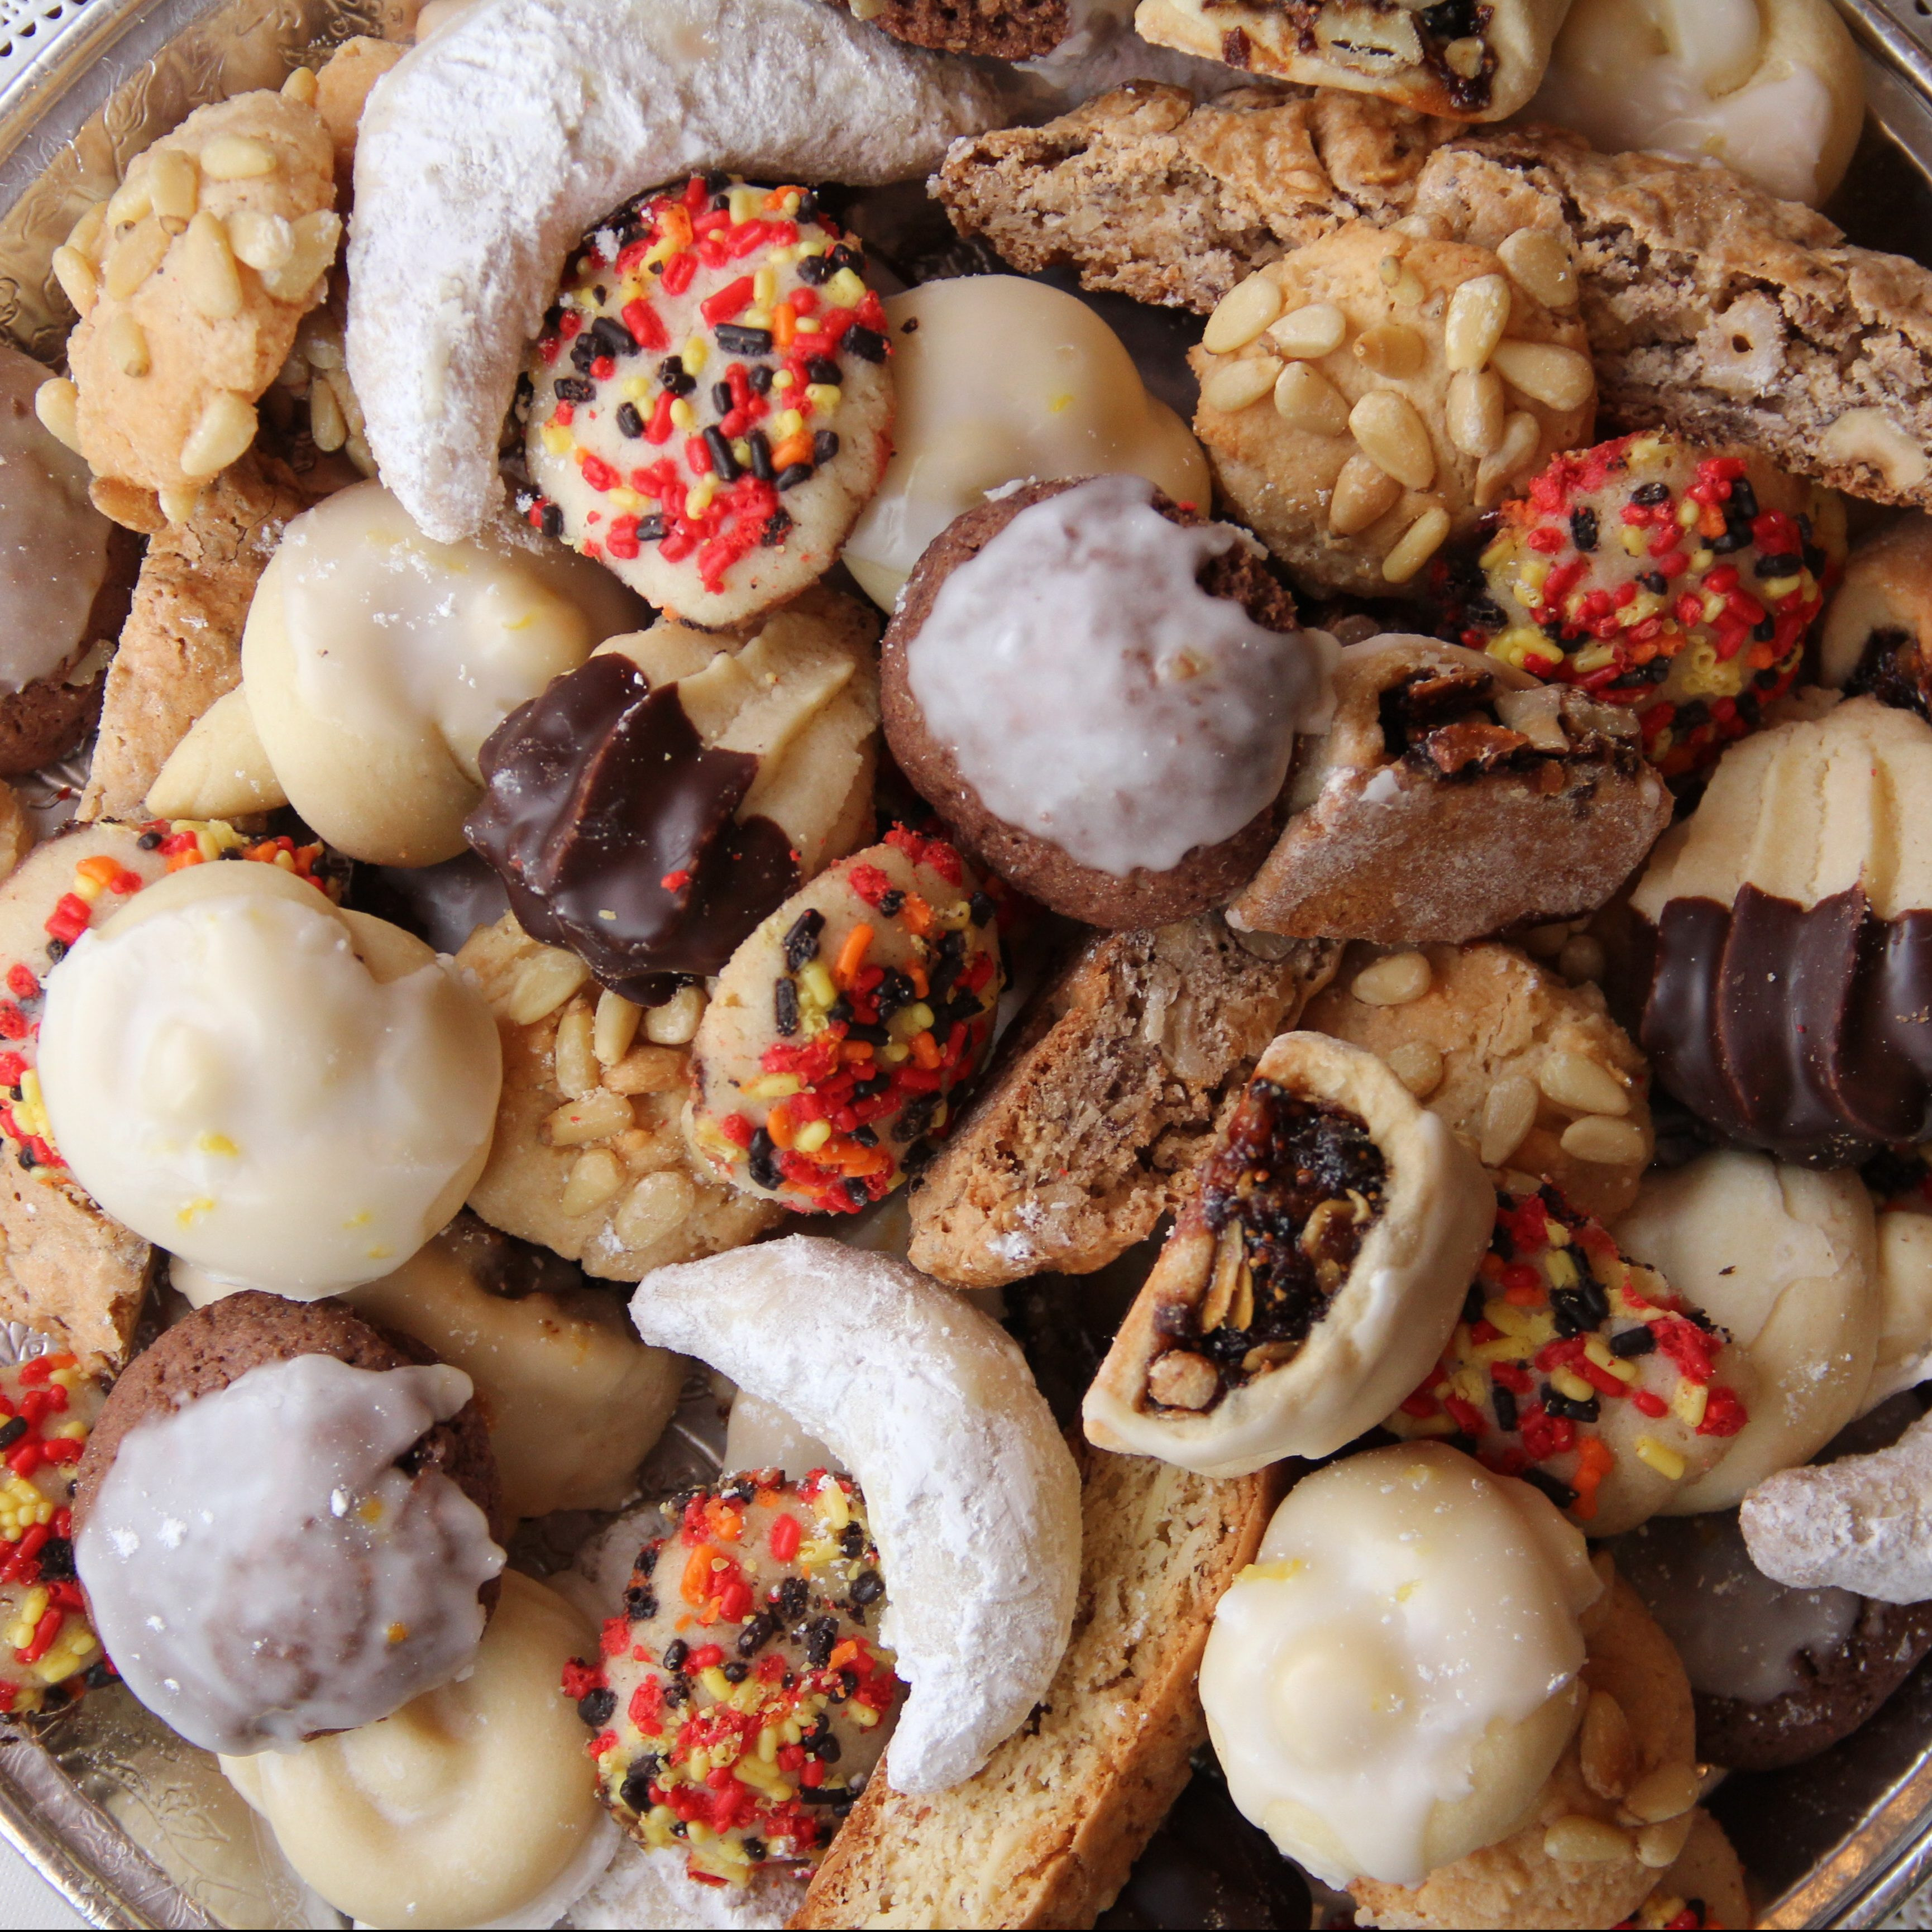 Christmas Cookies Online  Bakery Holiday Desserts and Gifts Shop online or in store